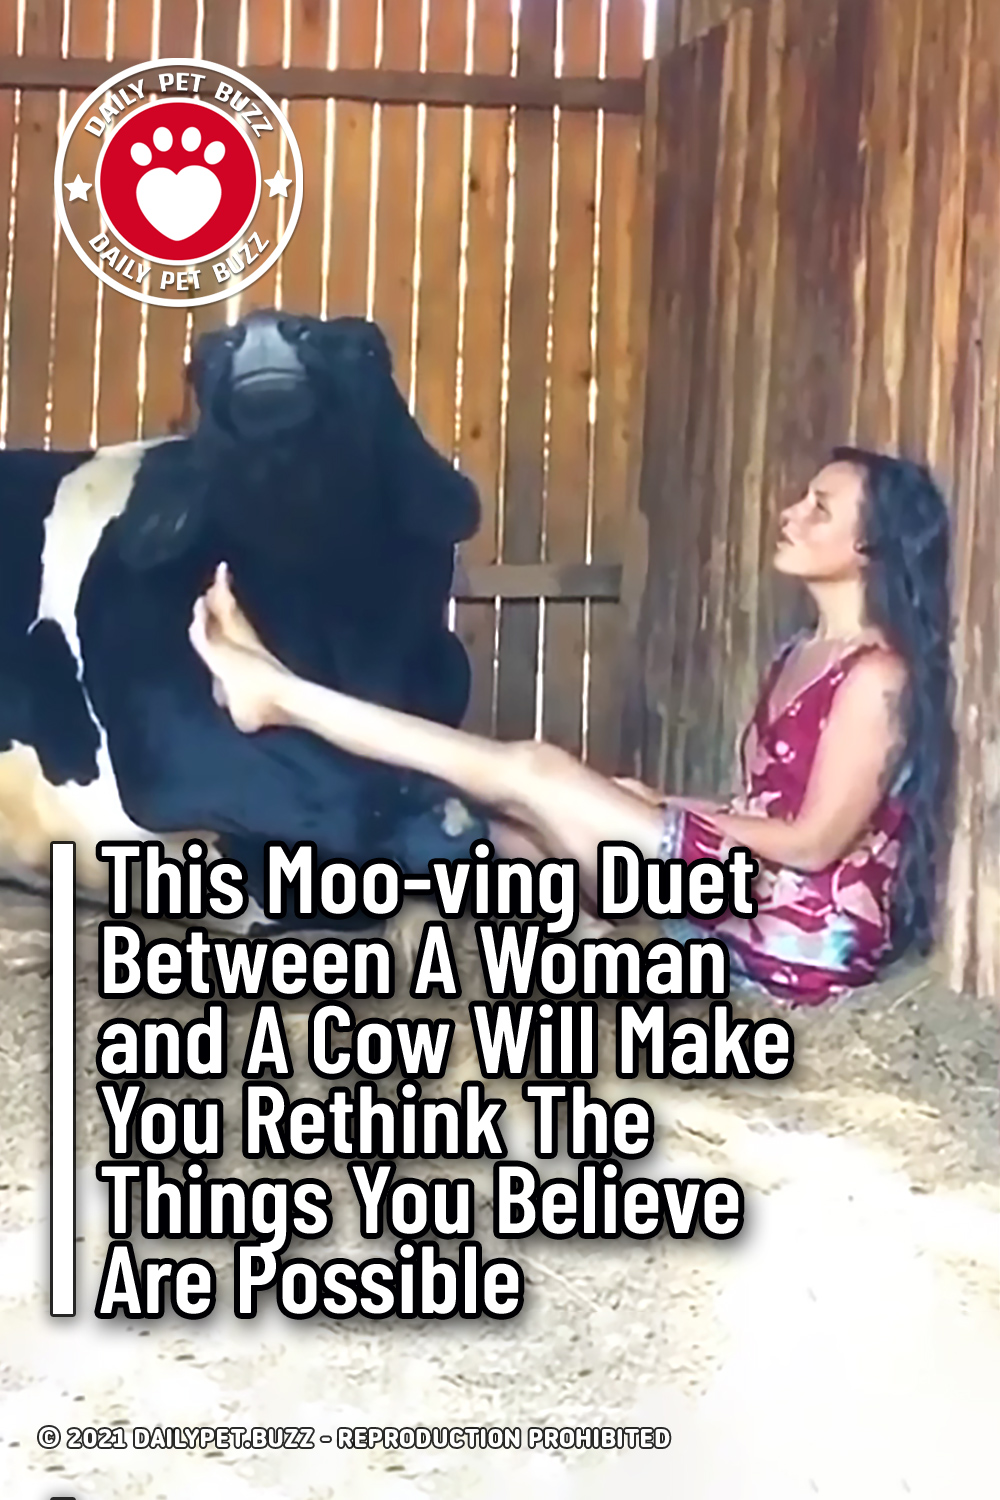 This Moo-ving Duet Between A Woman and A Cow Will Make You Rethink The Things You Believe Are Possible